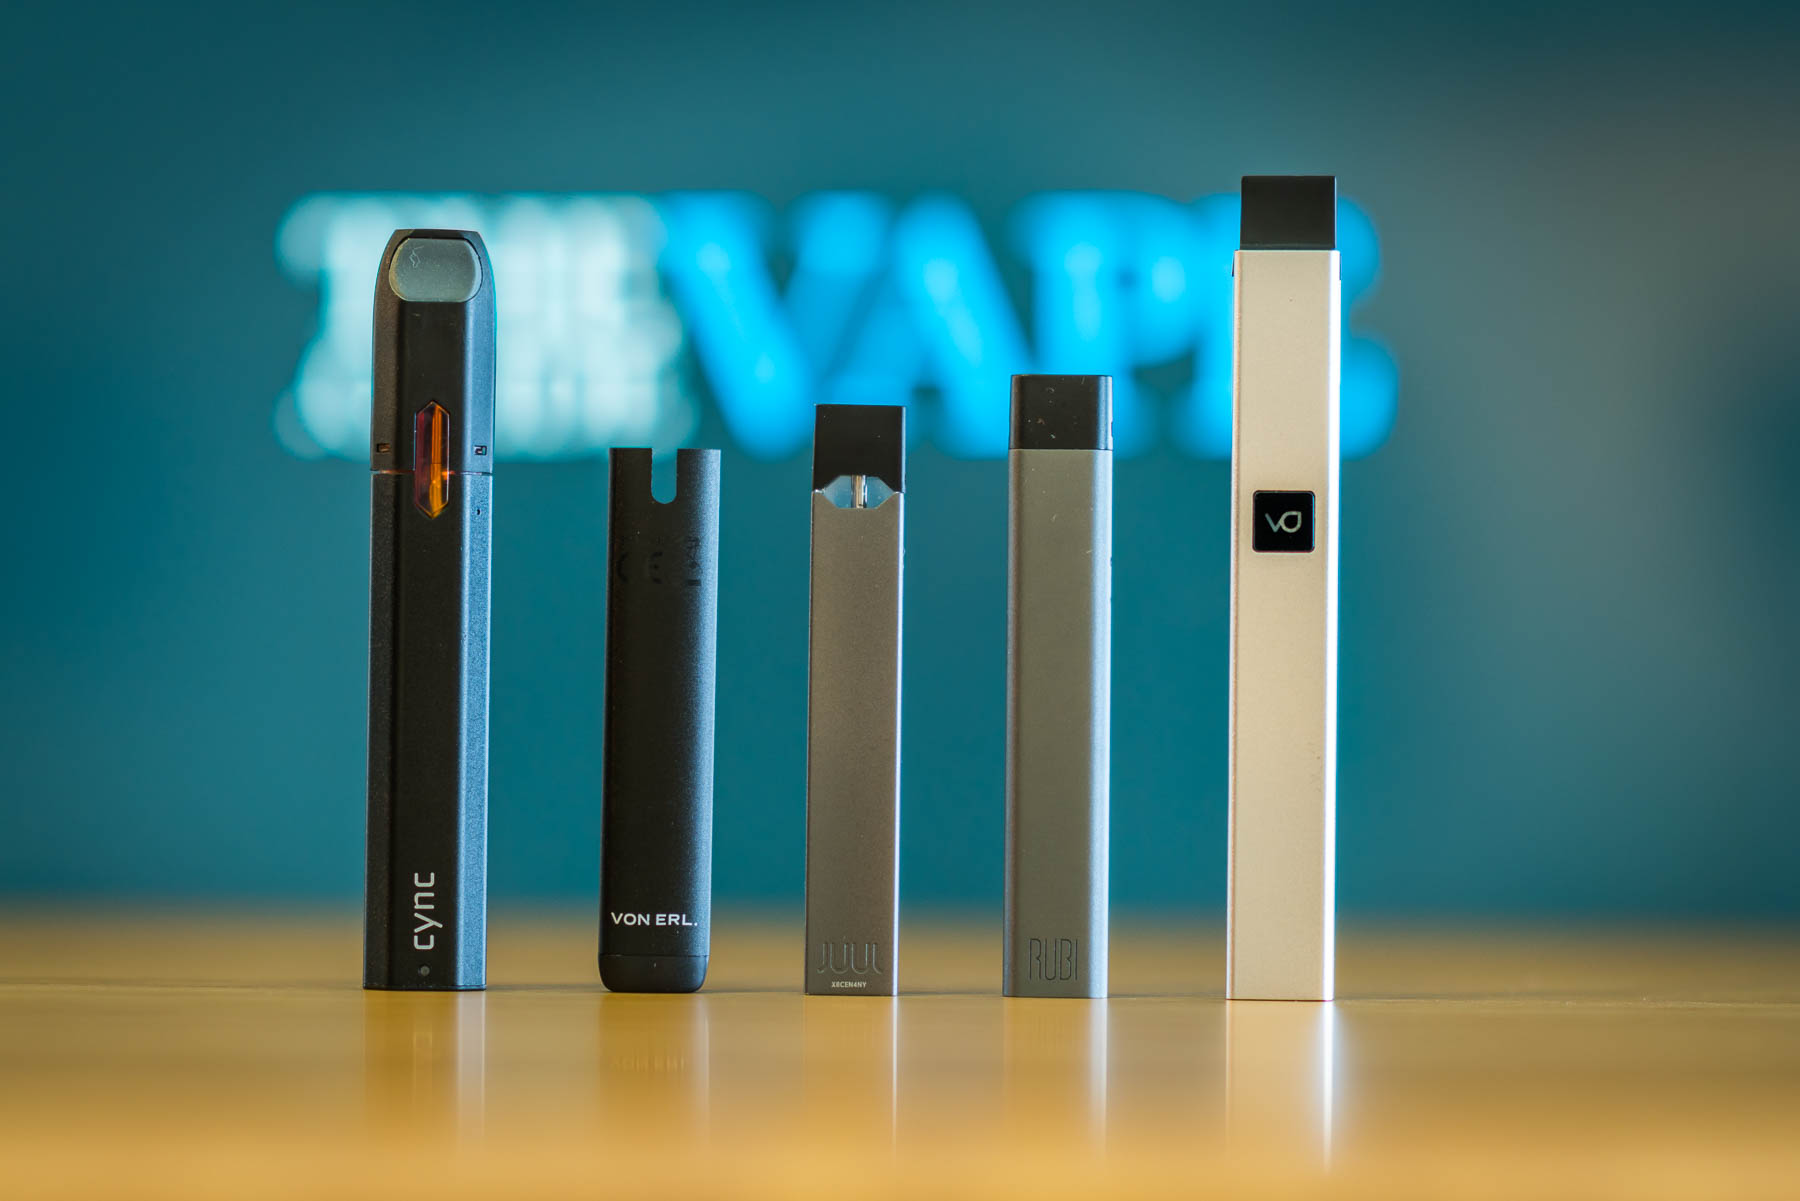 JUUL Alternatives 2019: 4 JUUL-like vapes that are better!